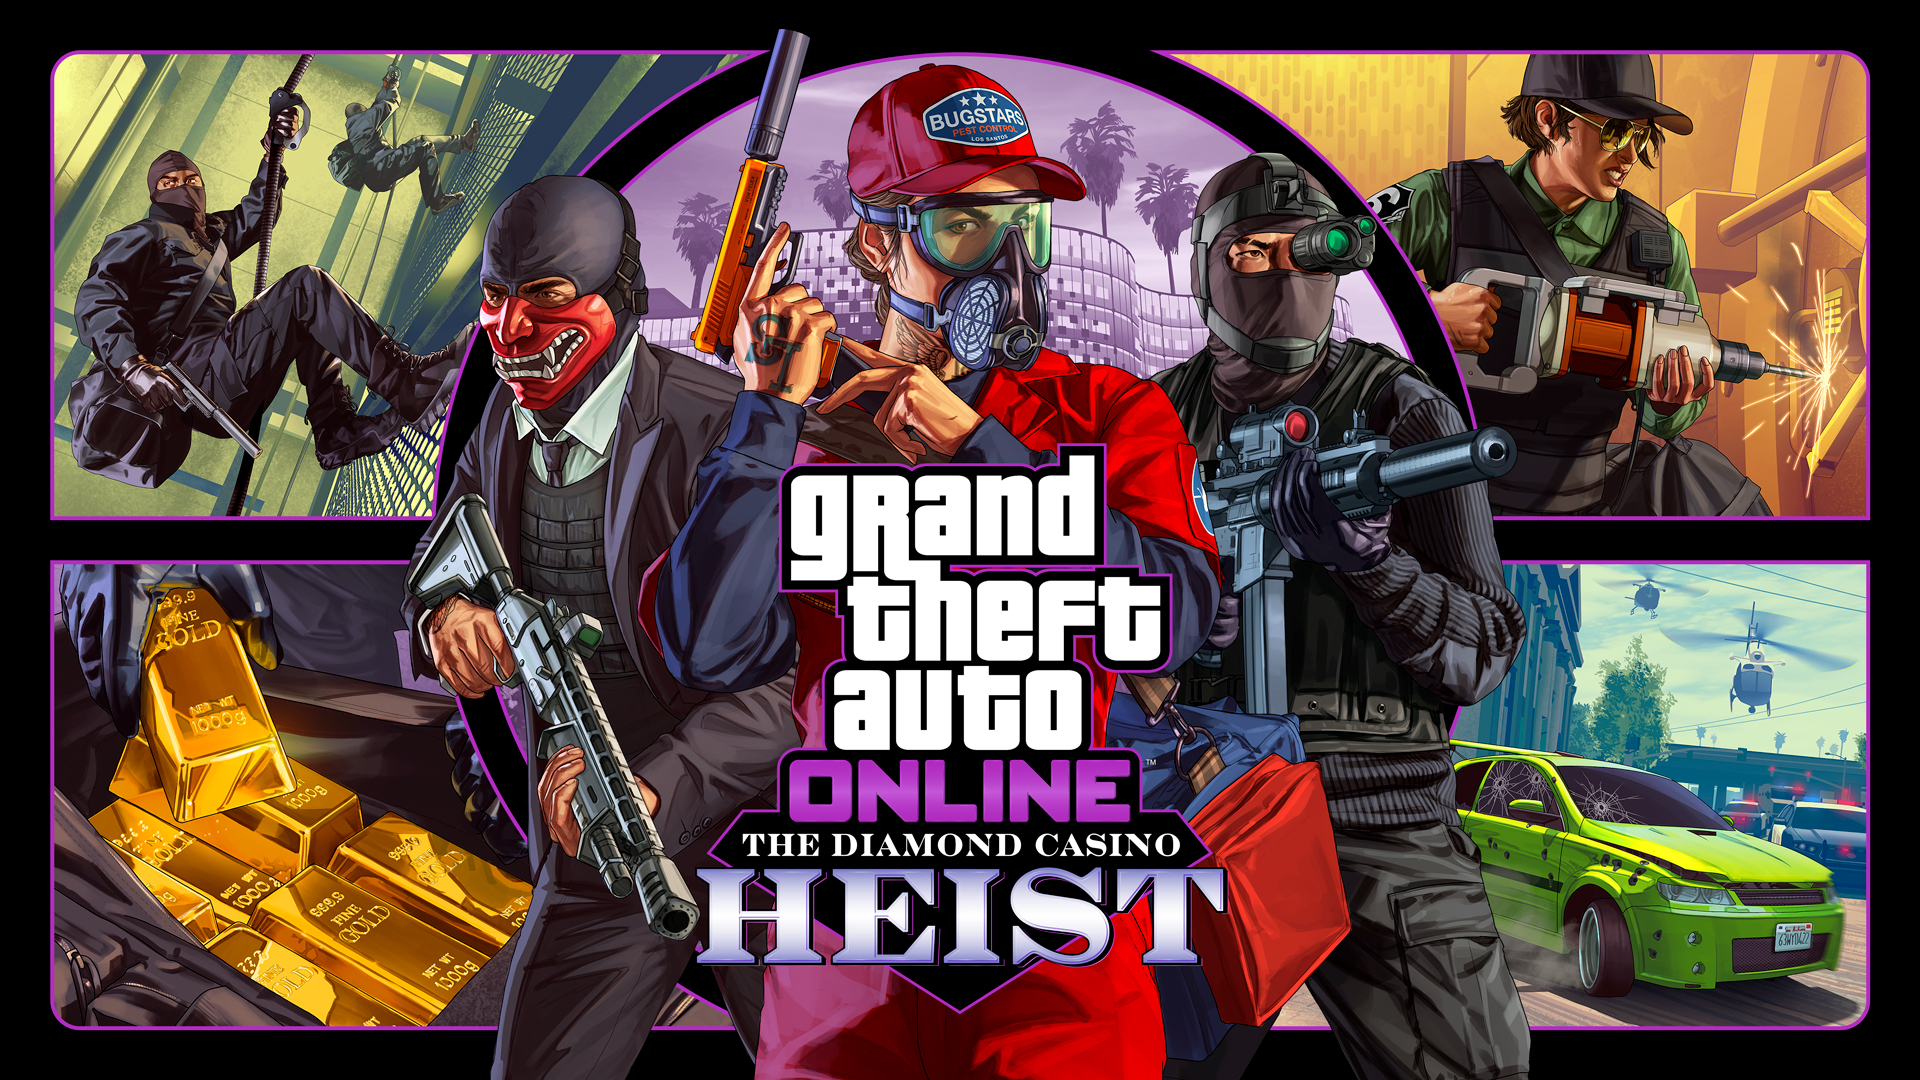 Get Ready for the Score of a Lifetime When the Diamond Casino Heist Infiltrates GTA Online Later This Month